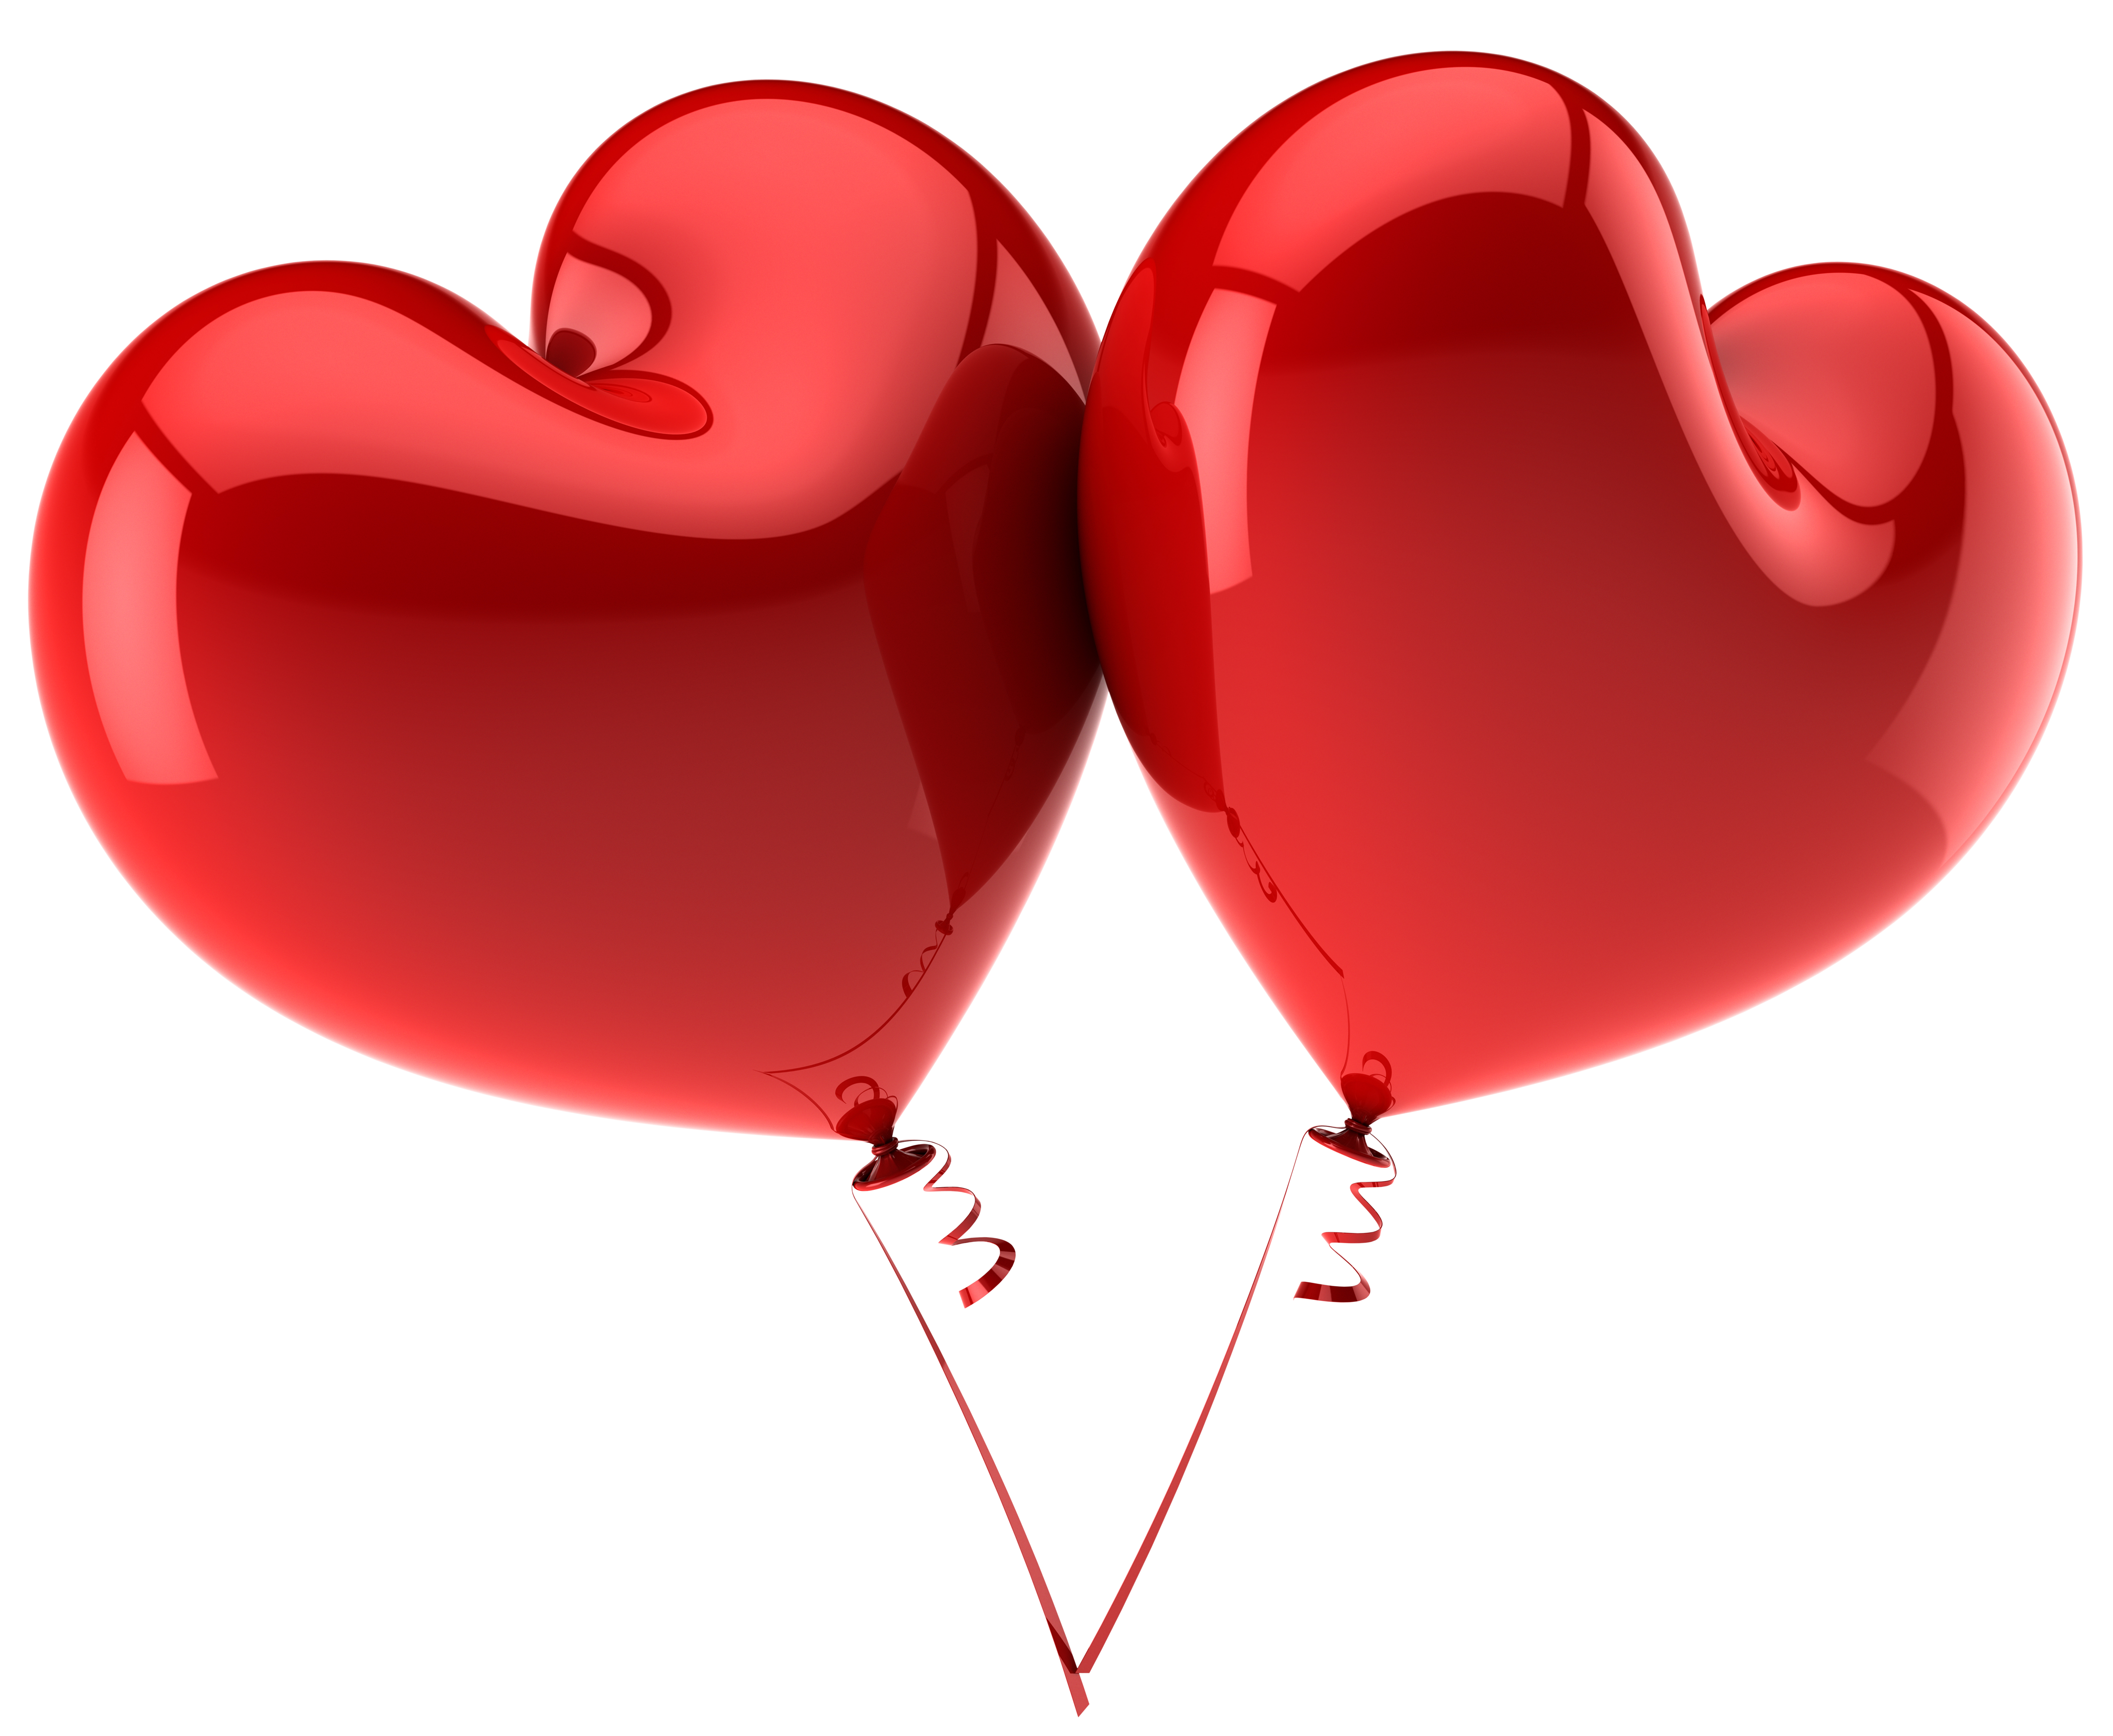 15 Heart Png Free Cliparts That You Can Download To You Computer And Clipart Luftballons Hallo Liebe